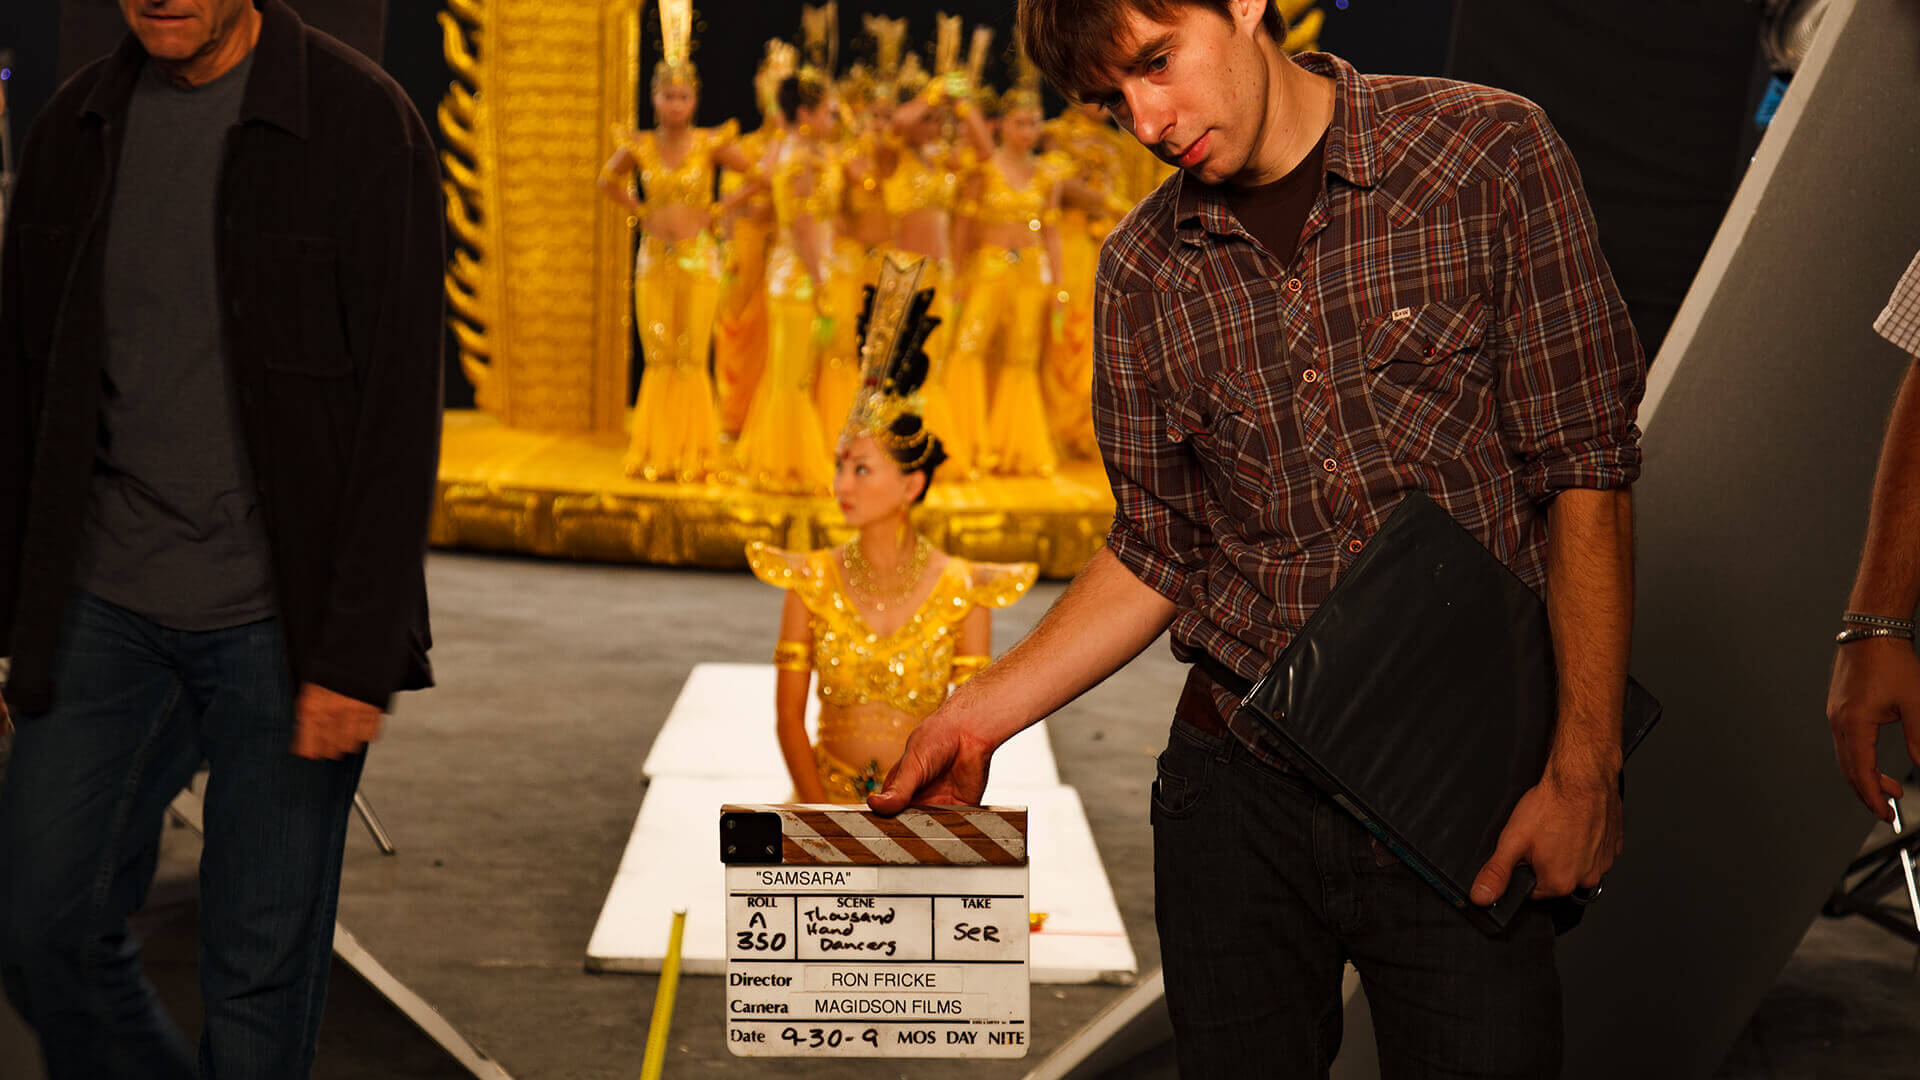 A man holding a clapper board in front of a sitting woman, a still from the movie Samsara.